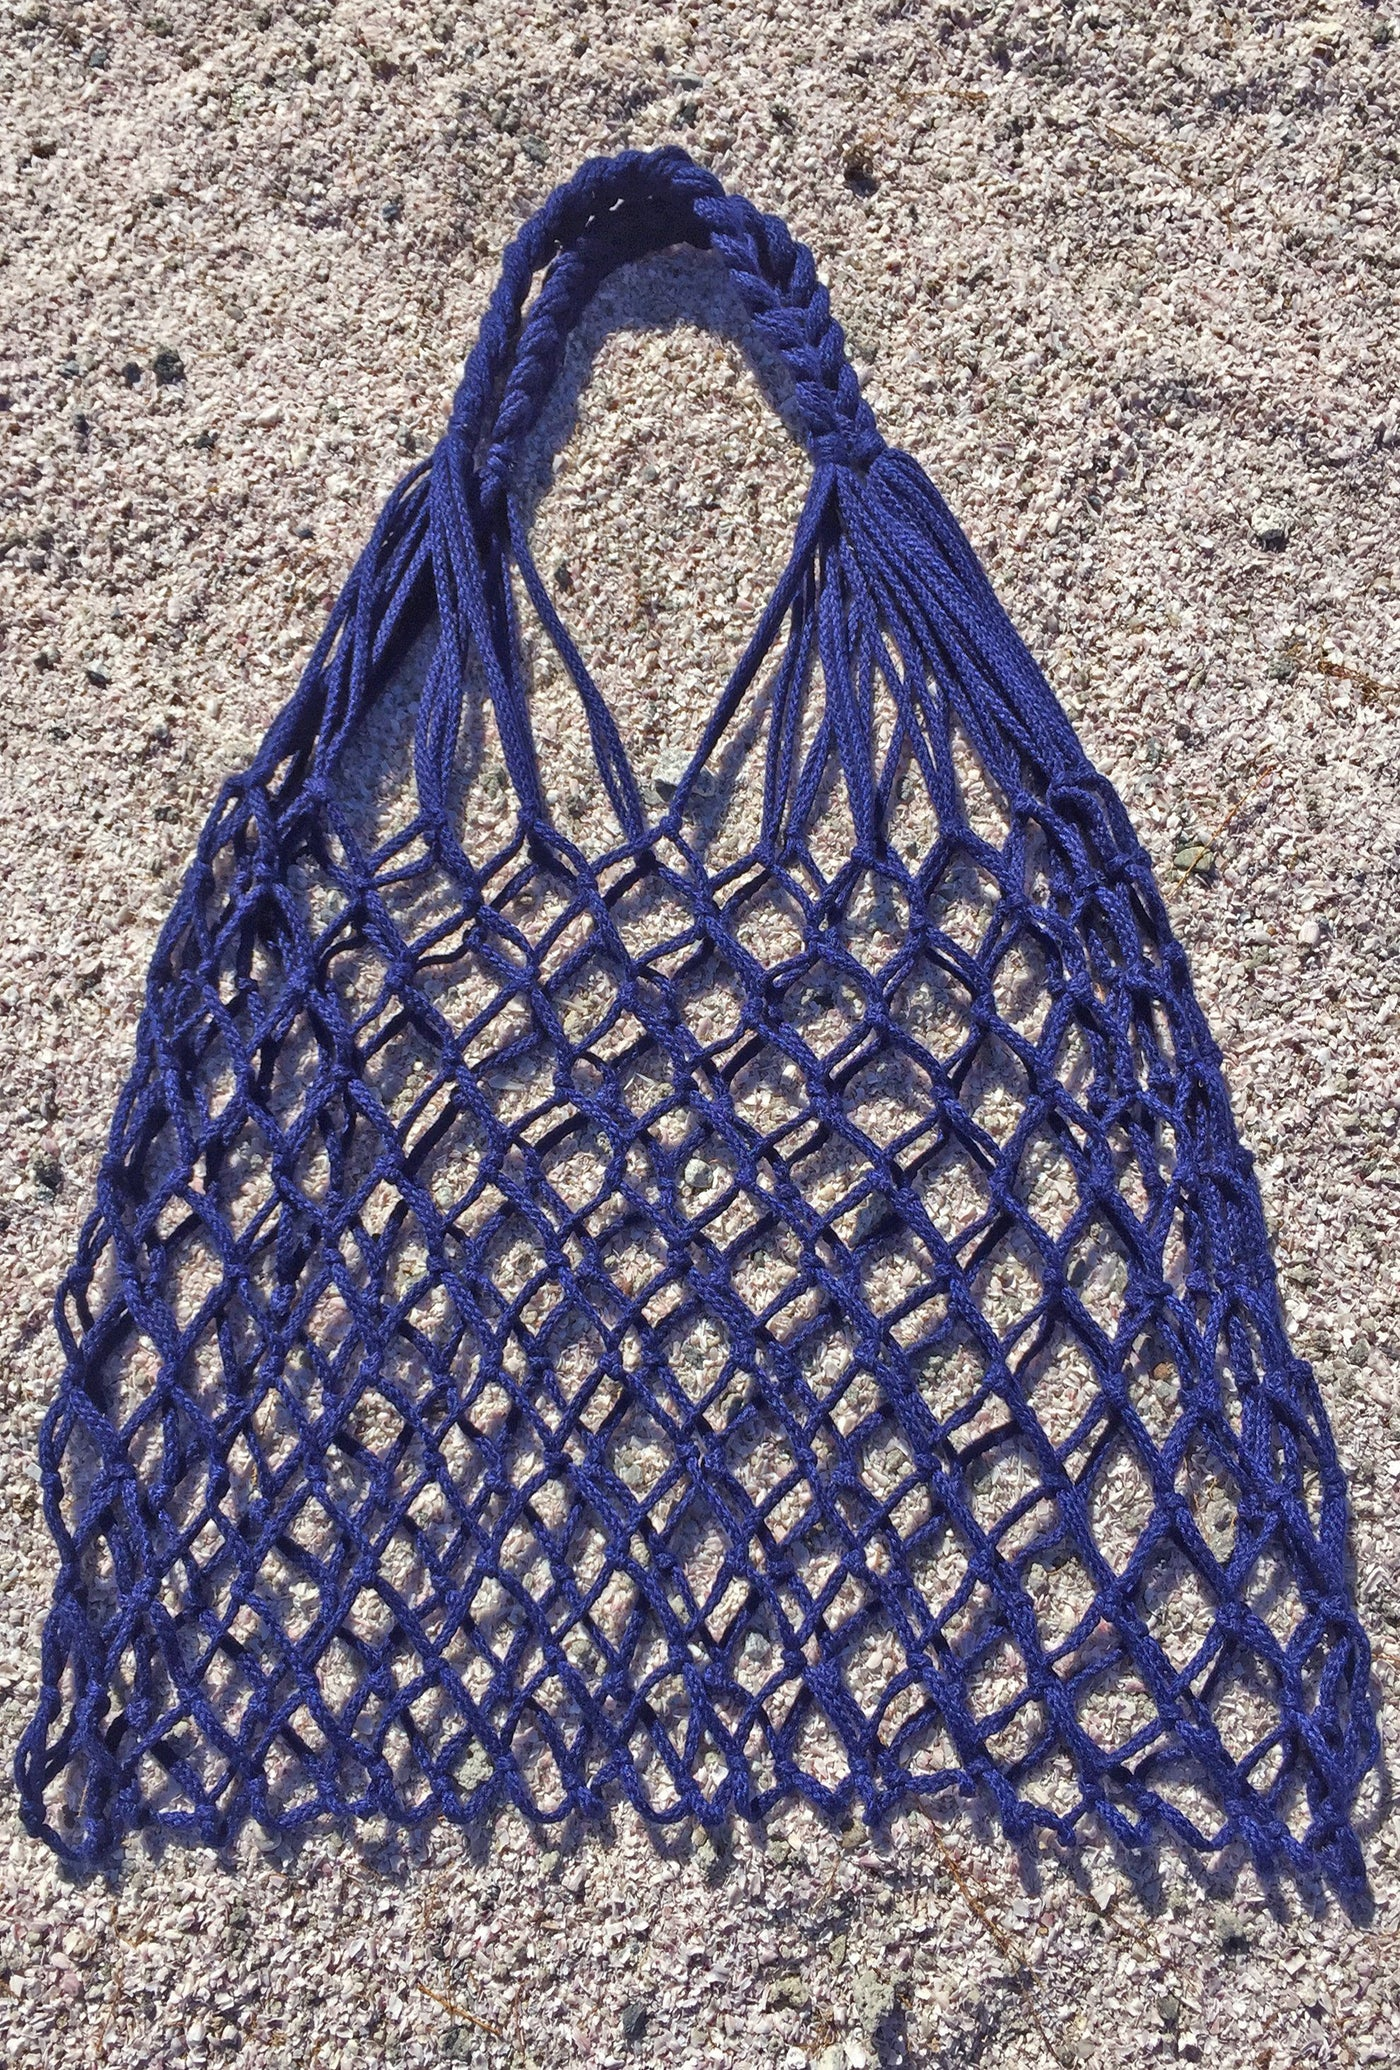 Bag - LA Burro Studio Hand-Knitted Market Bag - Navy Blue